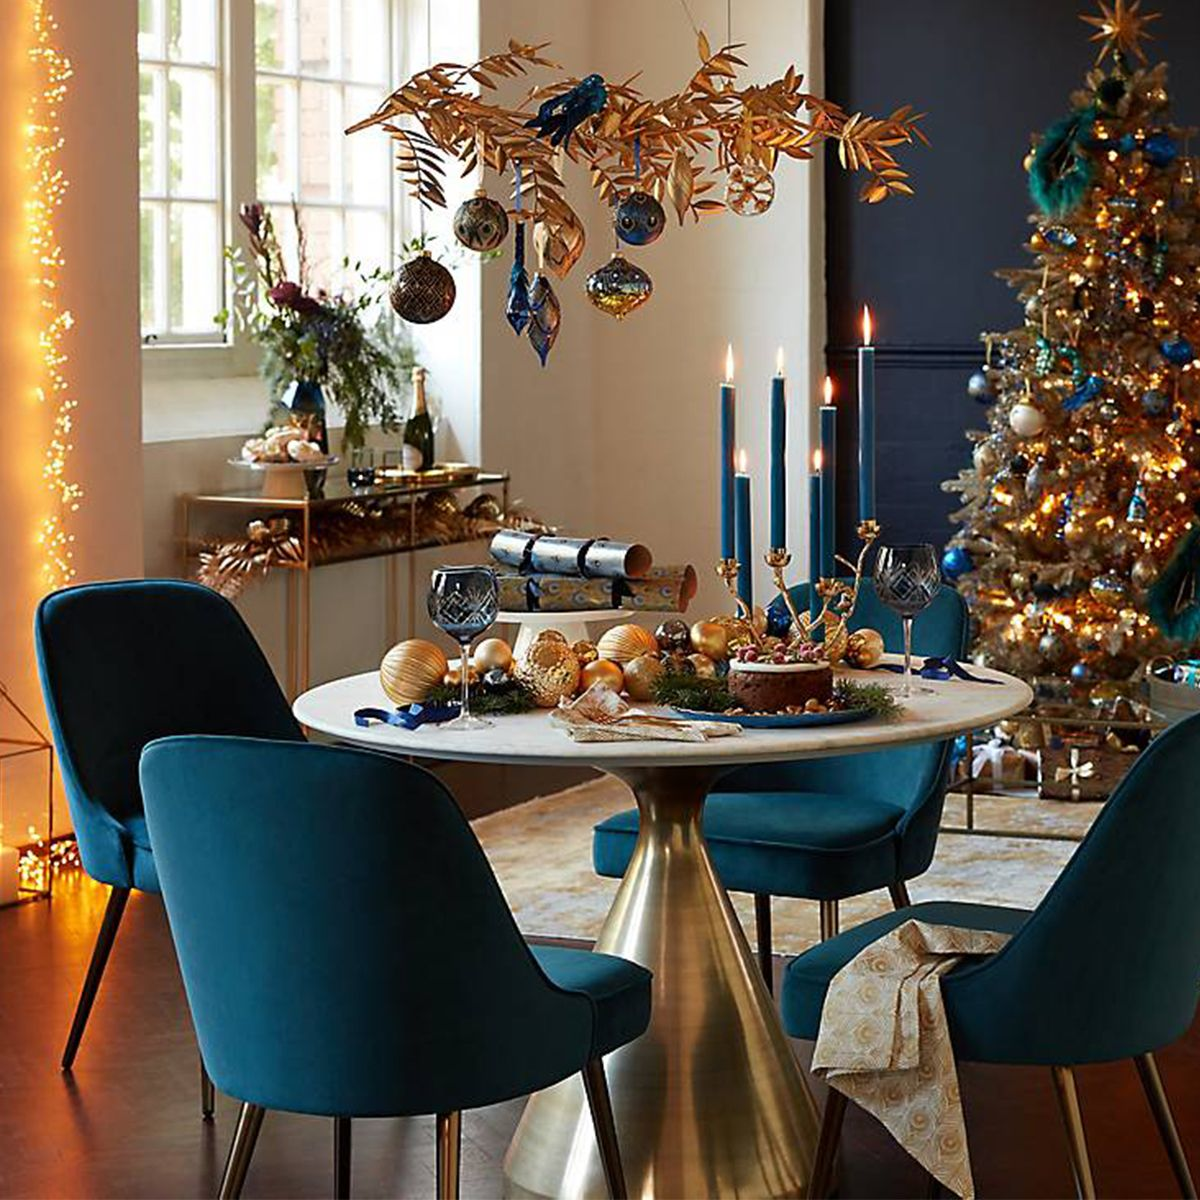 How to create a stylish Christmas tablescape